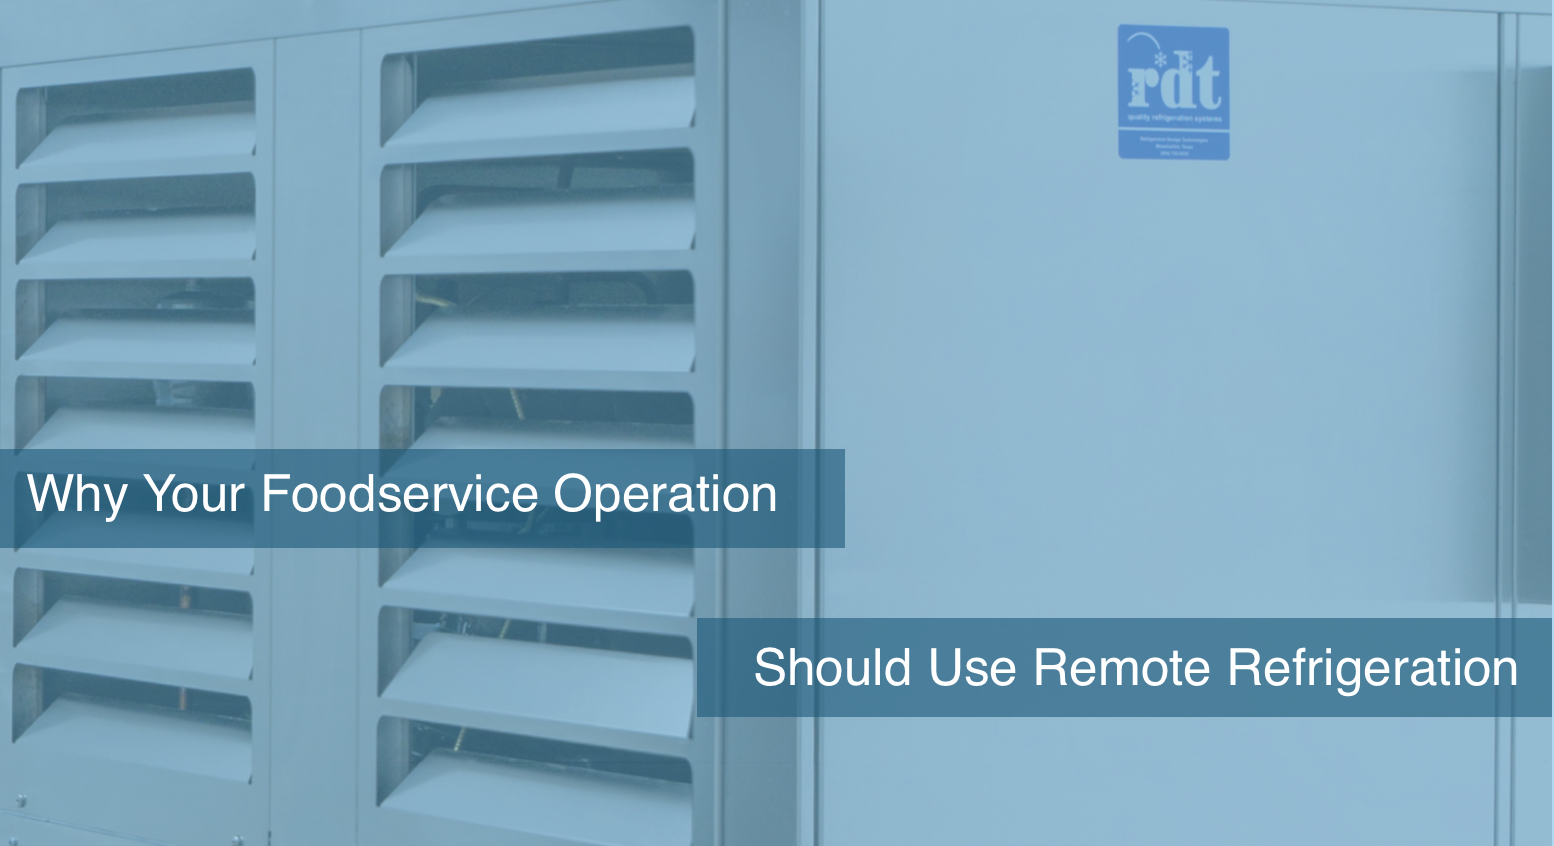 Three Reasons Your Foodservice Operation Should Use Remote Refrigeration